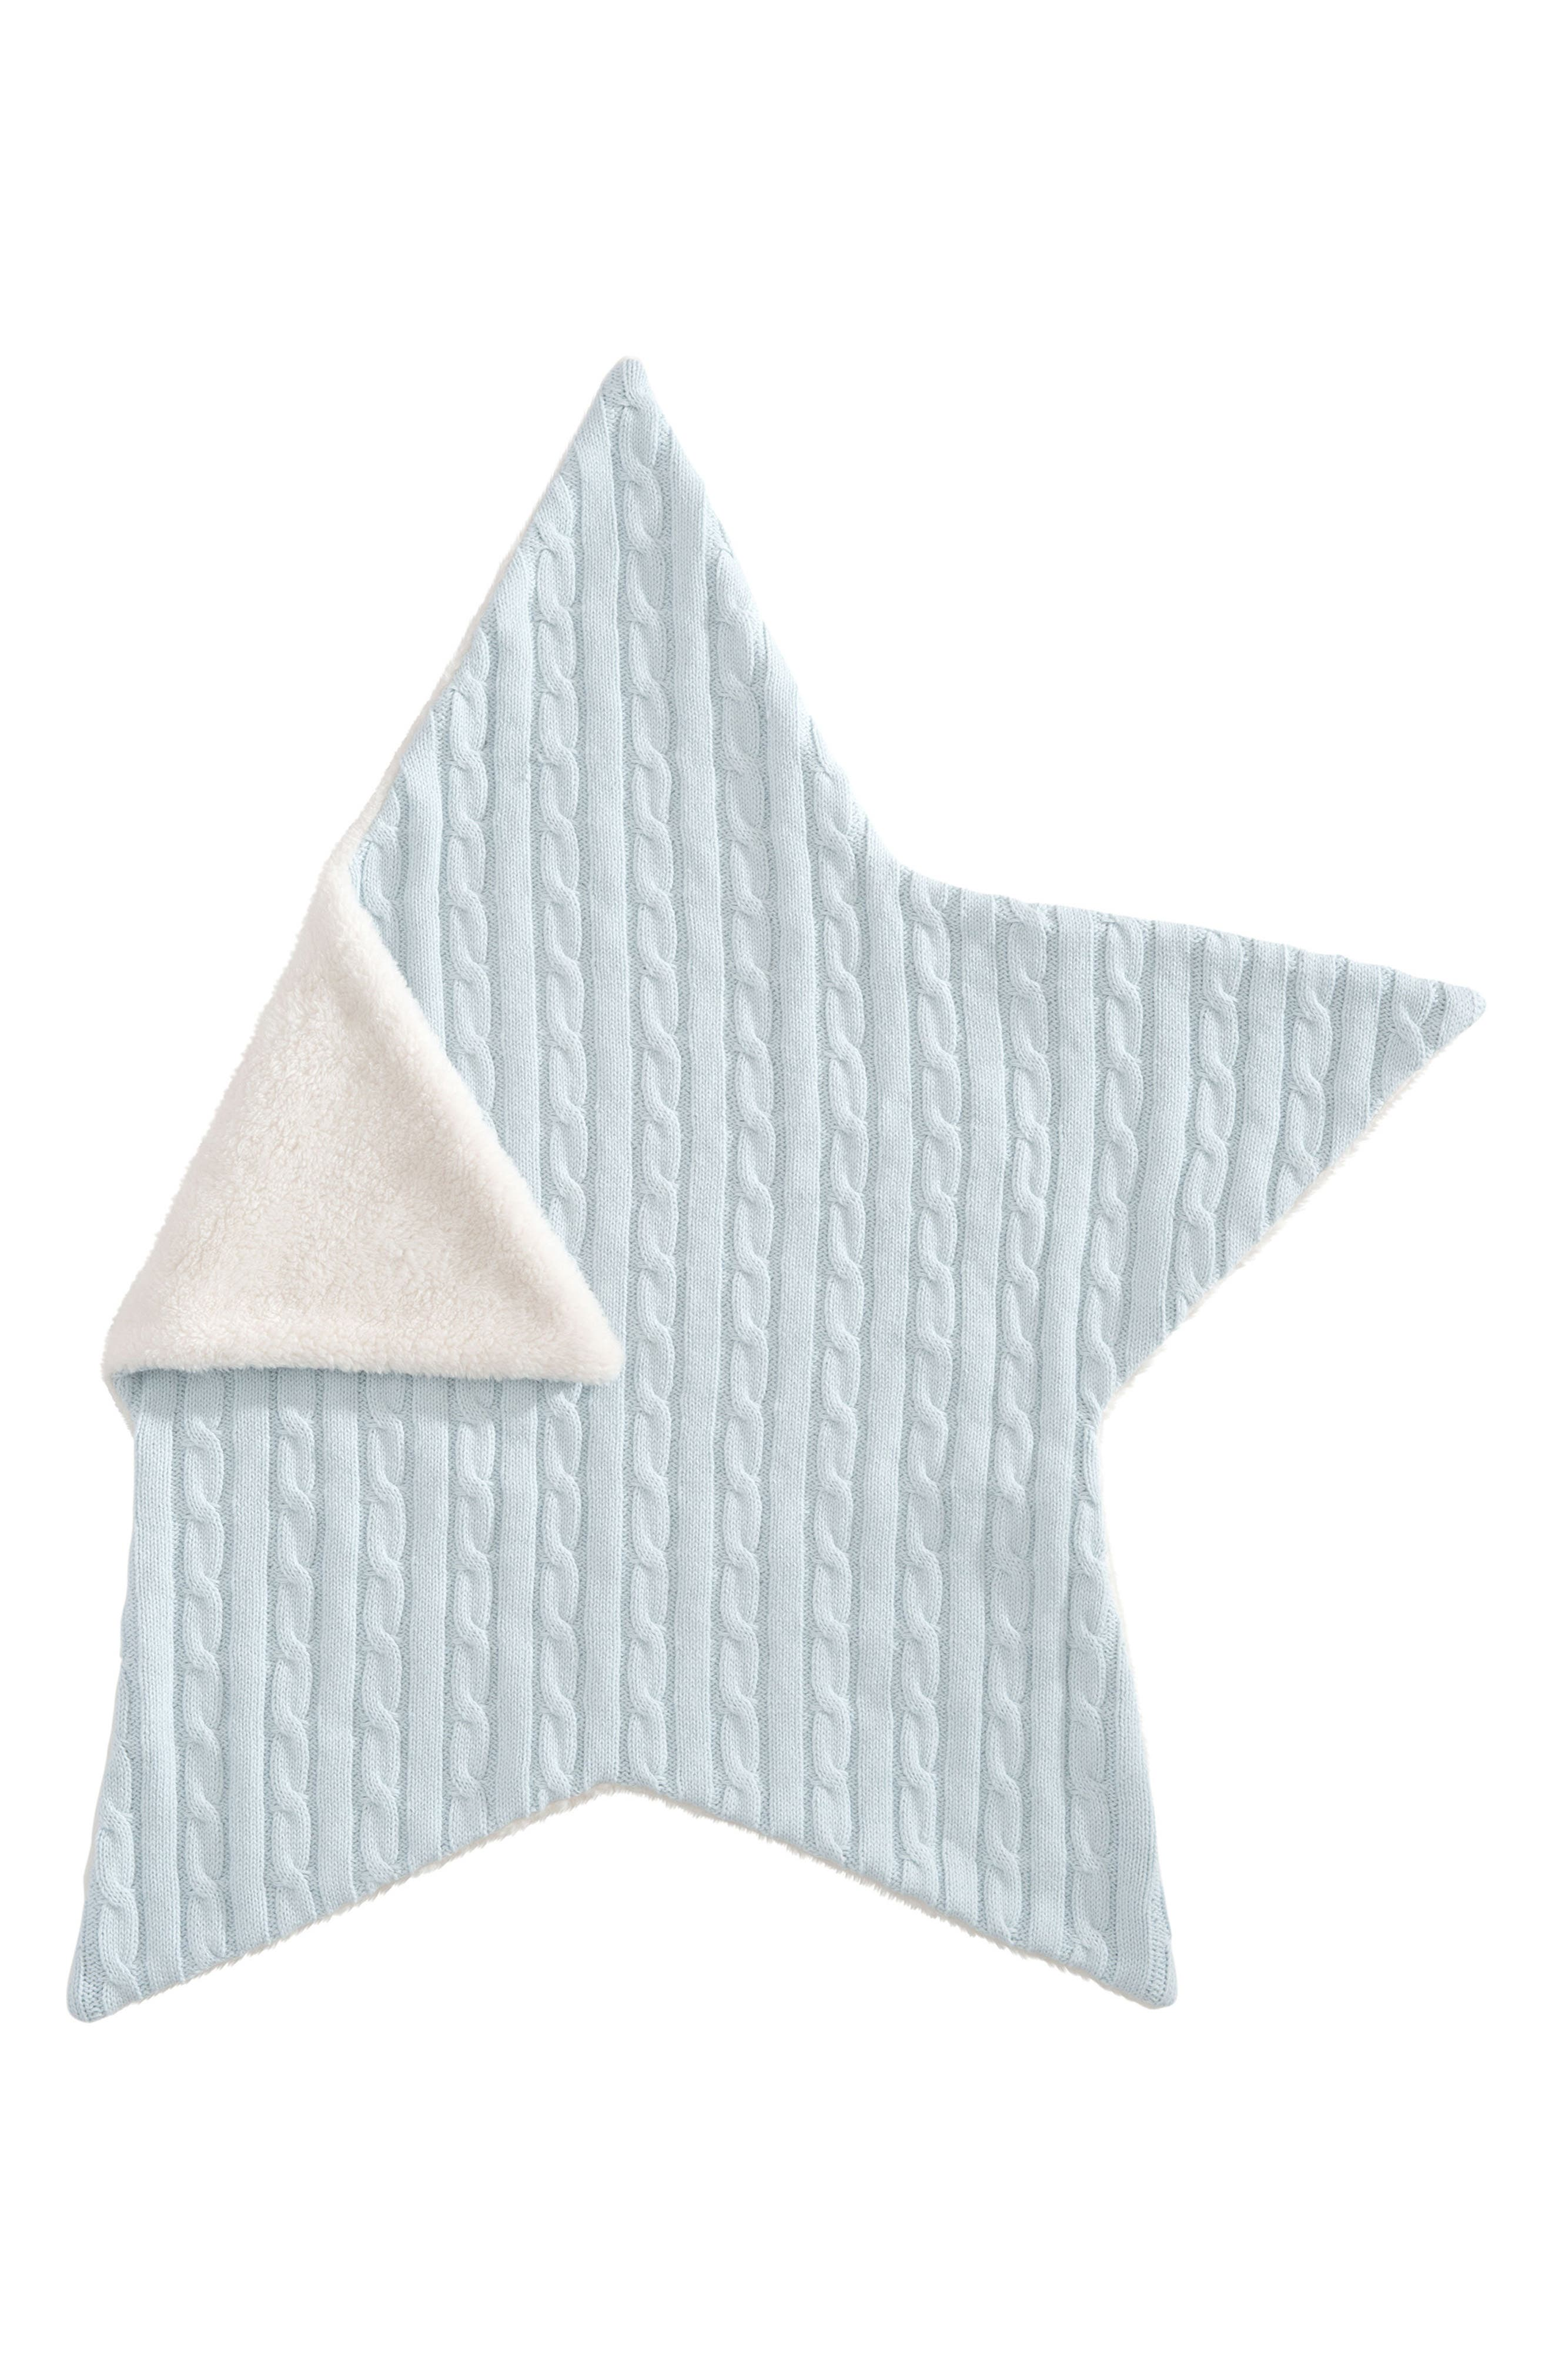 Cable Knit Star Blanket,                             Alternate thumbnail 5, color,